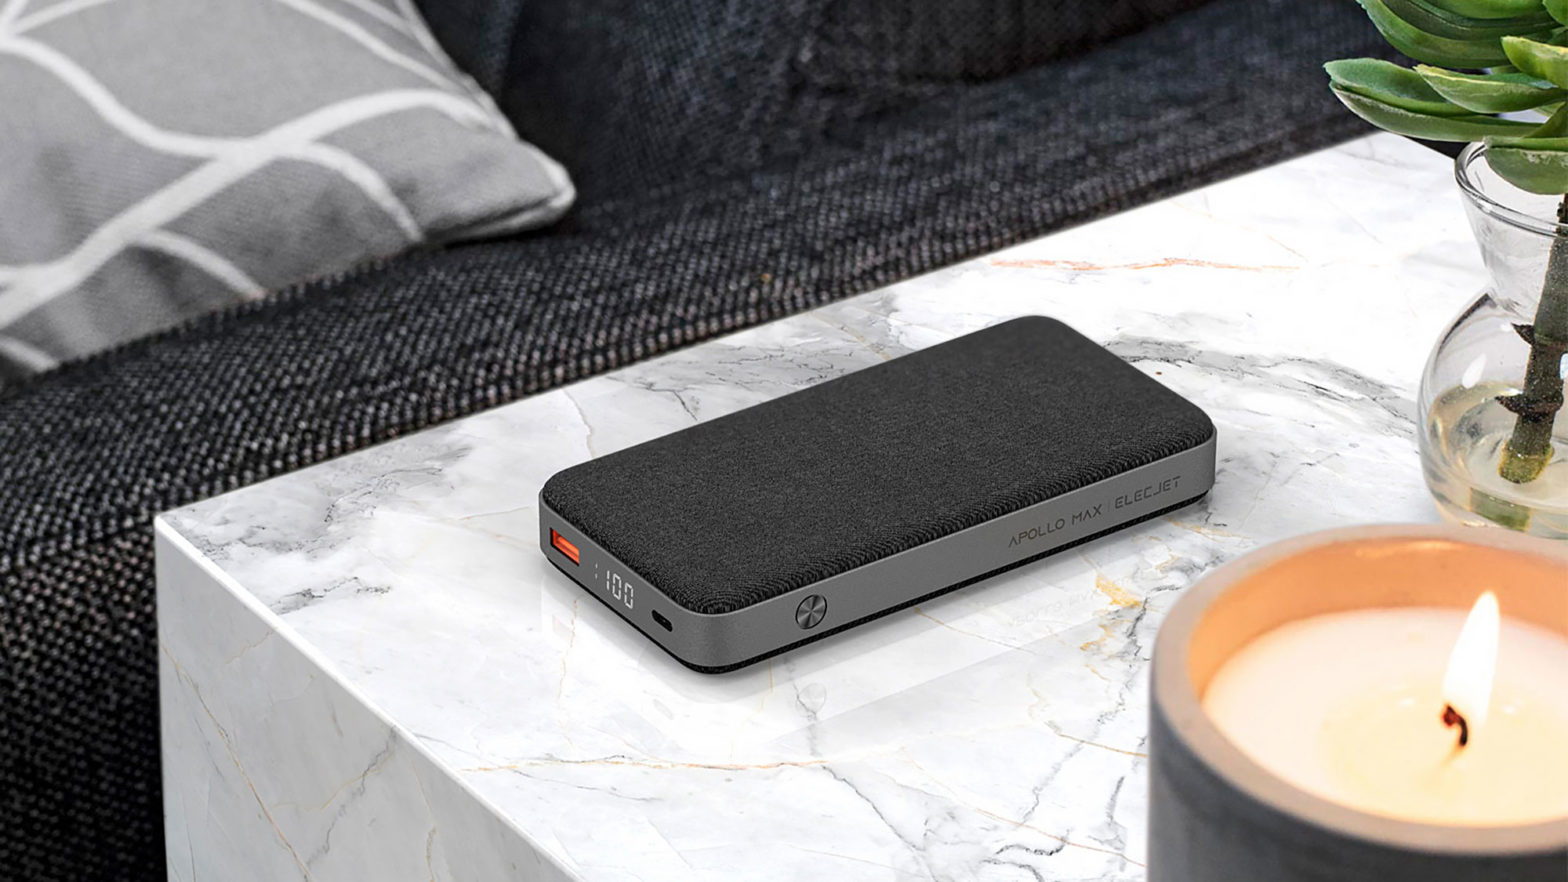 Apollo Max Graphene Power Bank